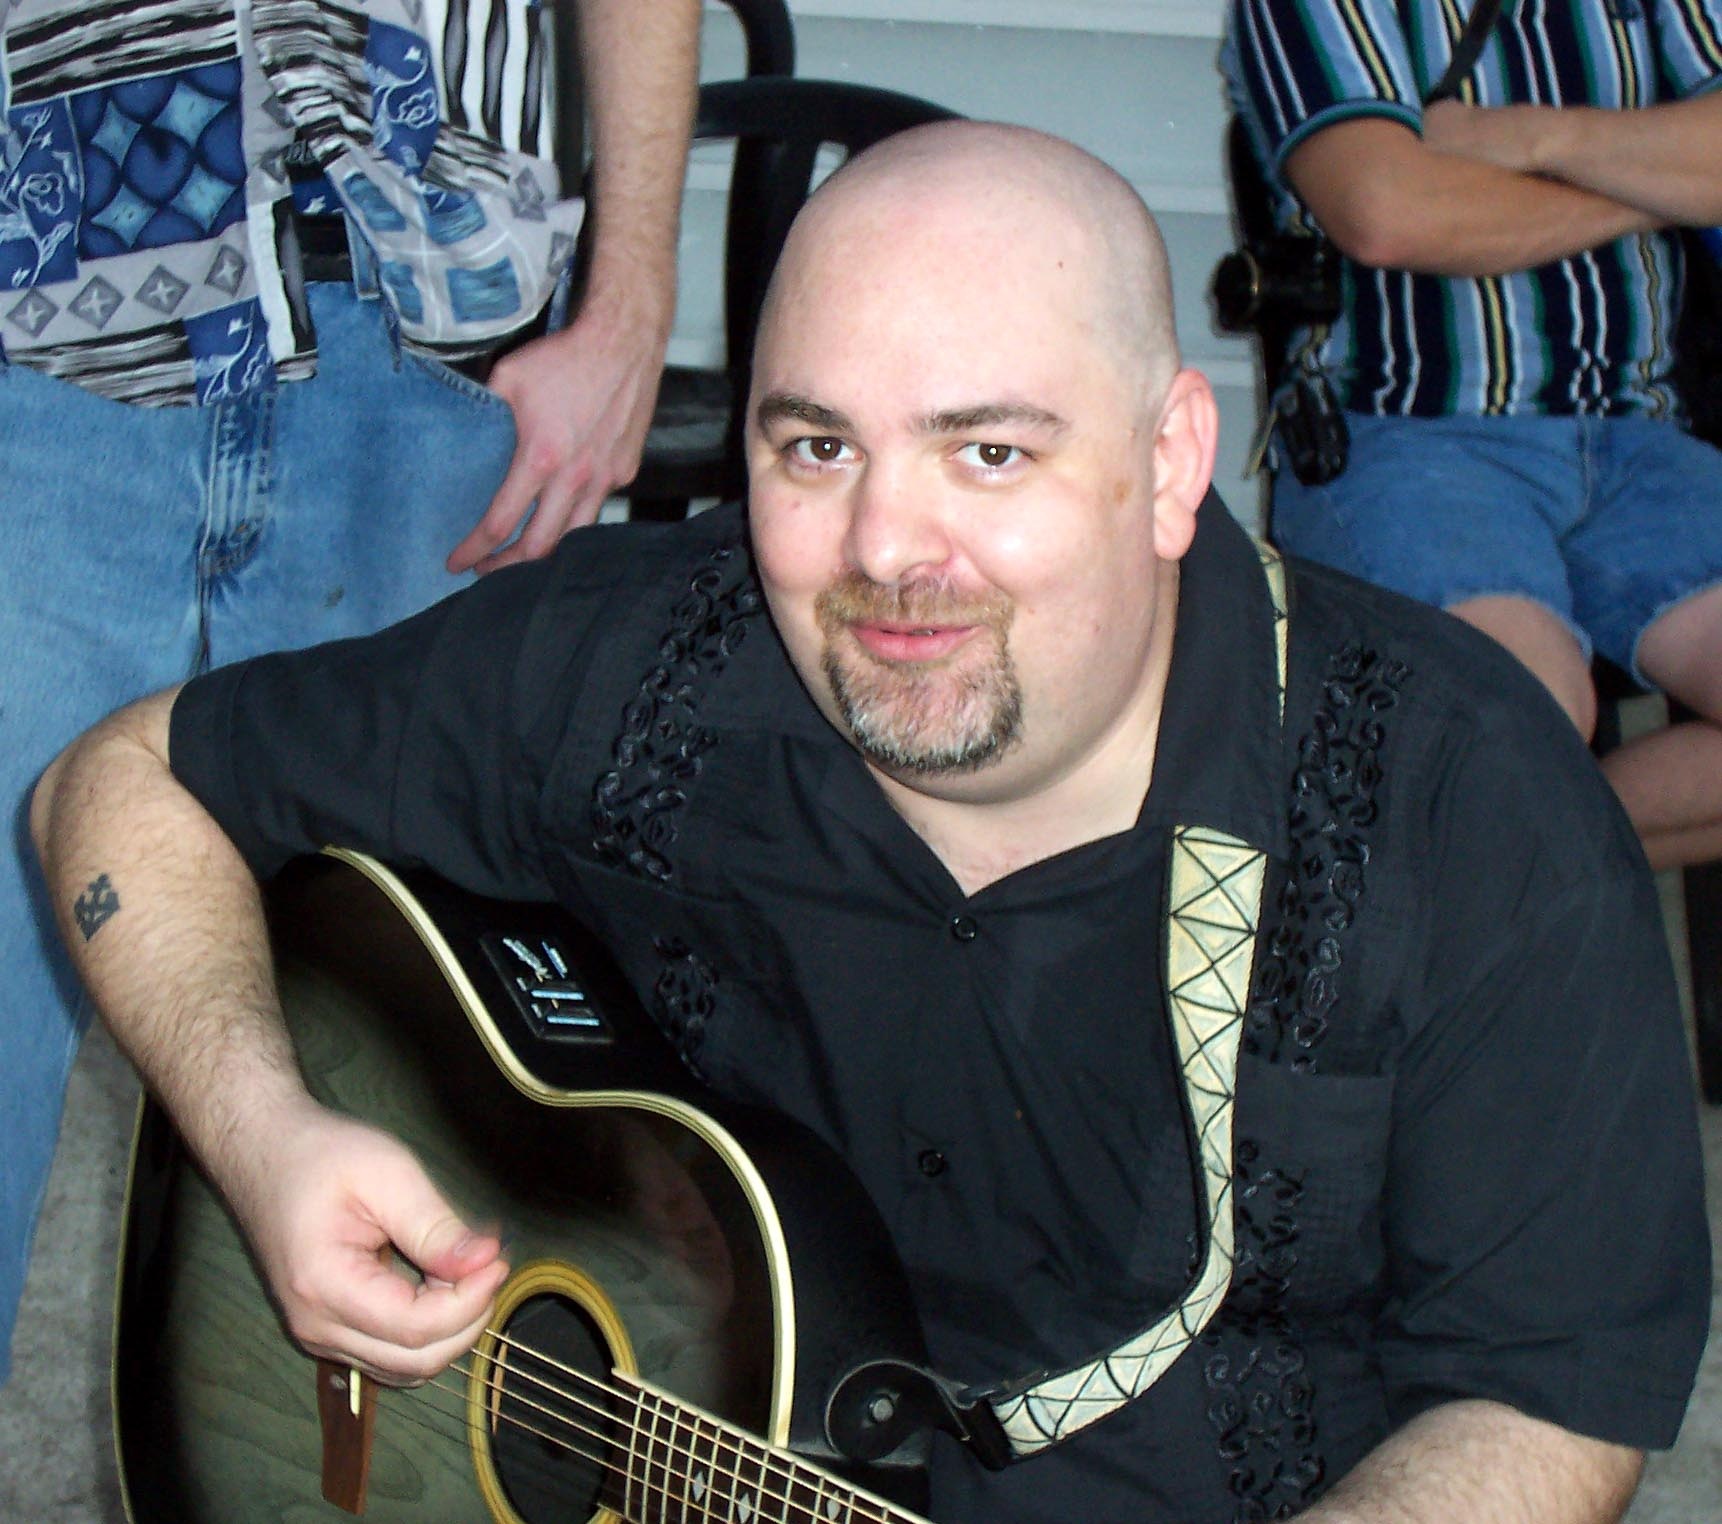 picture_026 Matt Dillahunty, the then-president of the ACA, with a guitar on a bat cruise in September 2006